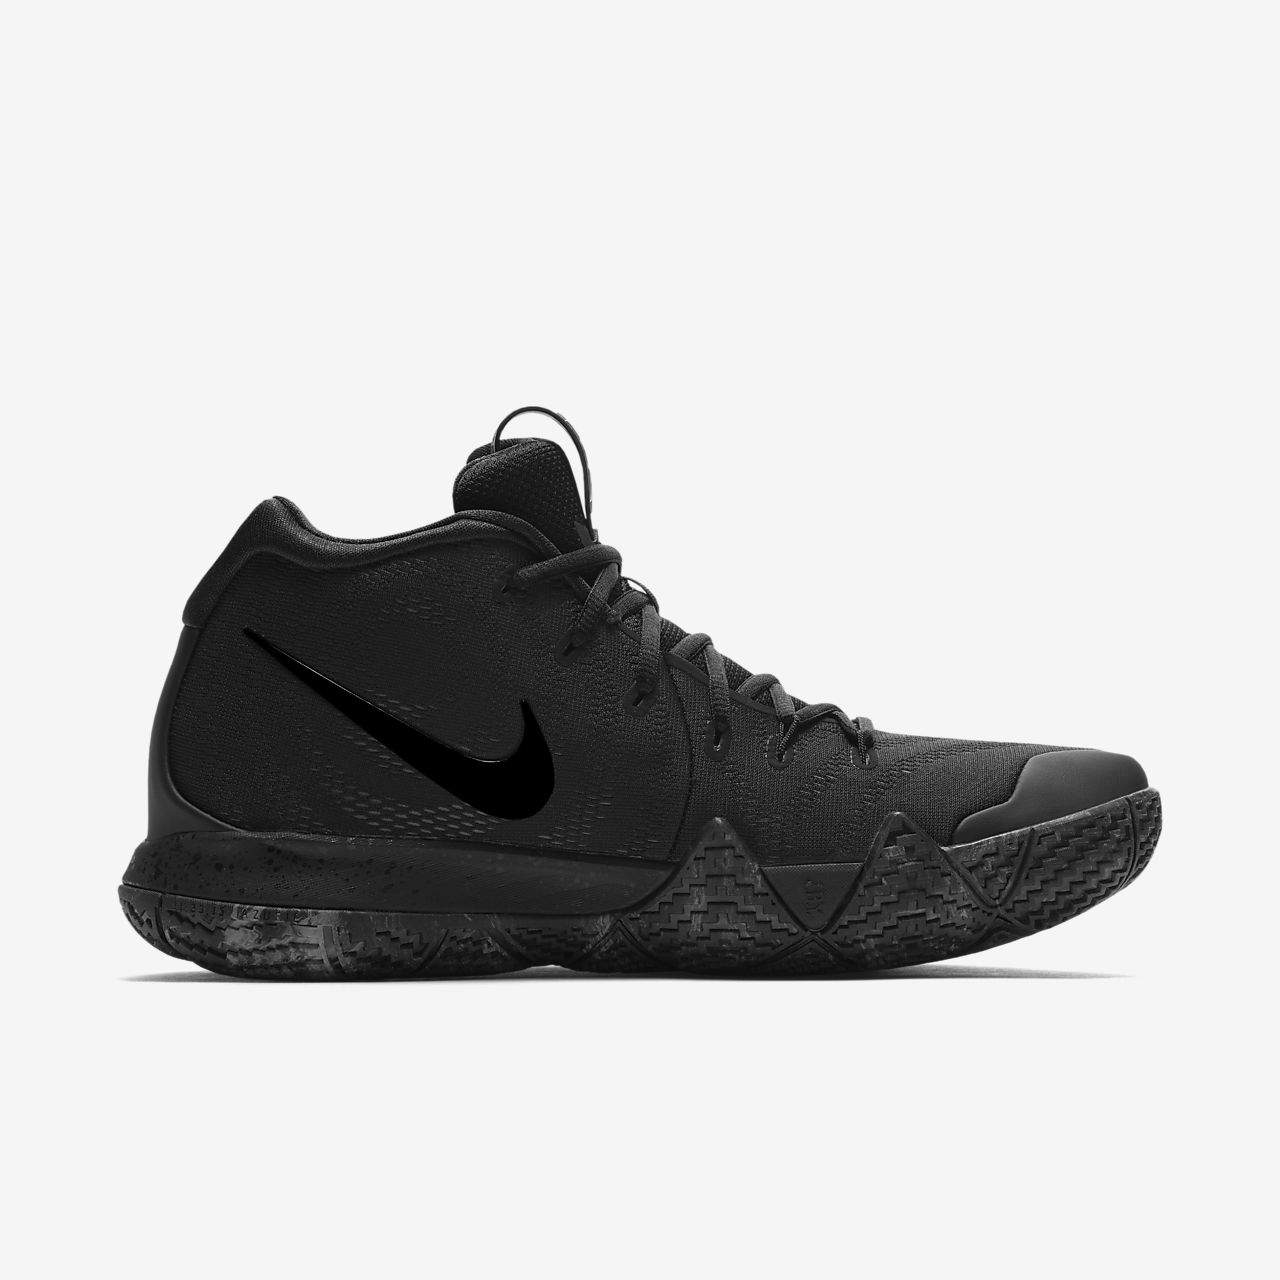 71f4ae5f7833 Low Resolution Kyrie 4 Basketball Shoe Kyrie 4 Basketball Shoe